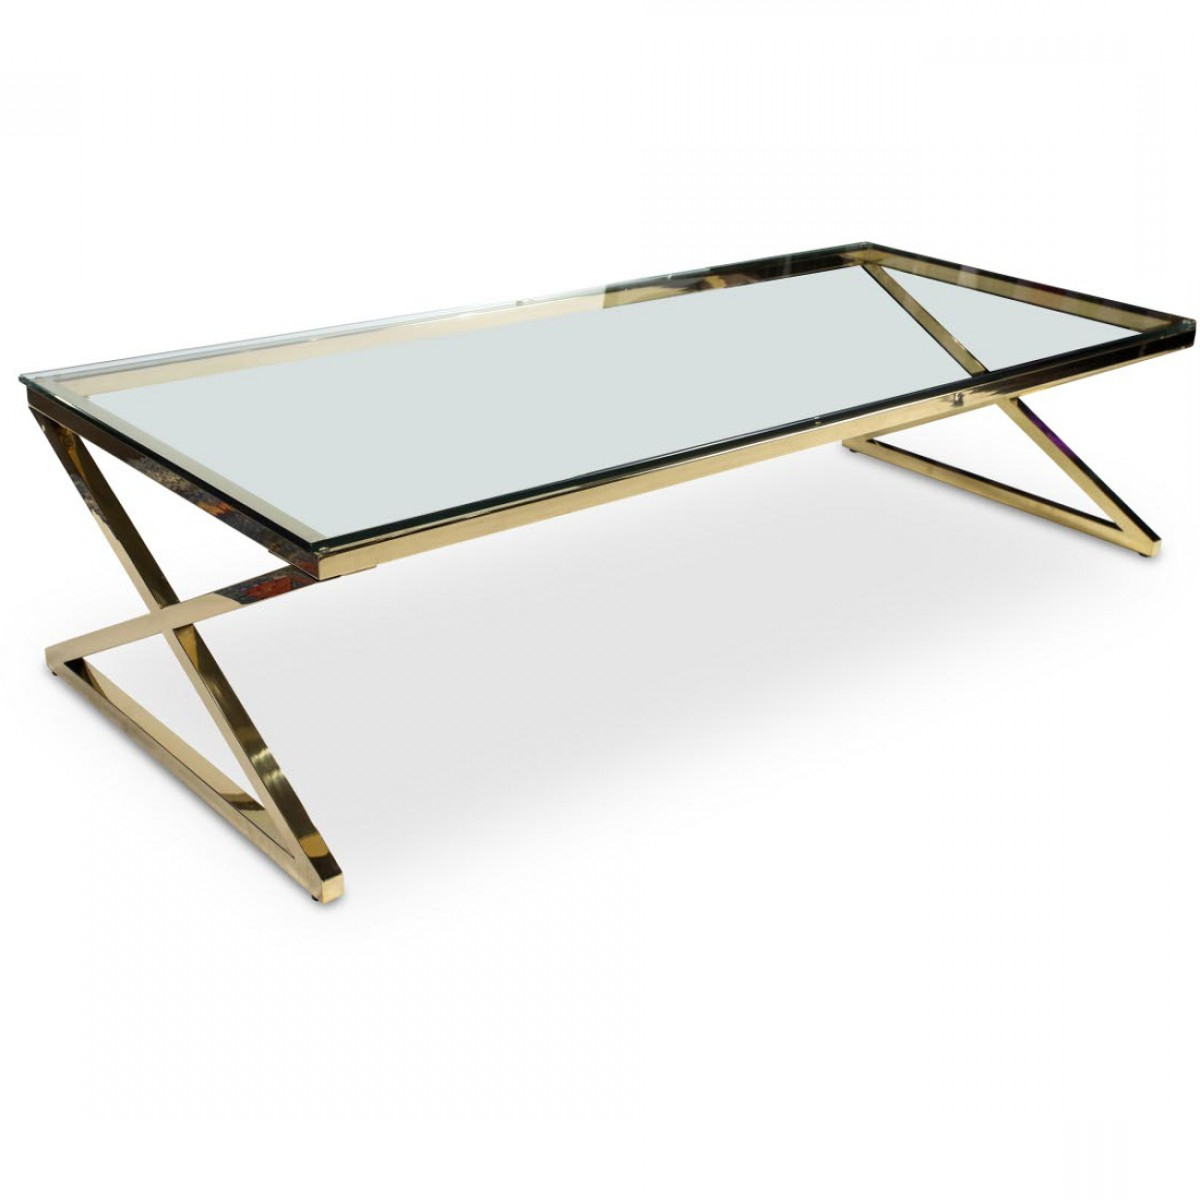 Fashionable Aico Michael Amini Trance Stacy Rectangular Cocktail Table With With Rectangular Coffee Tables With Brass Legs (View 8 of 20)